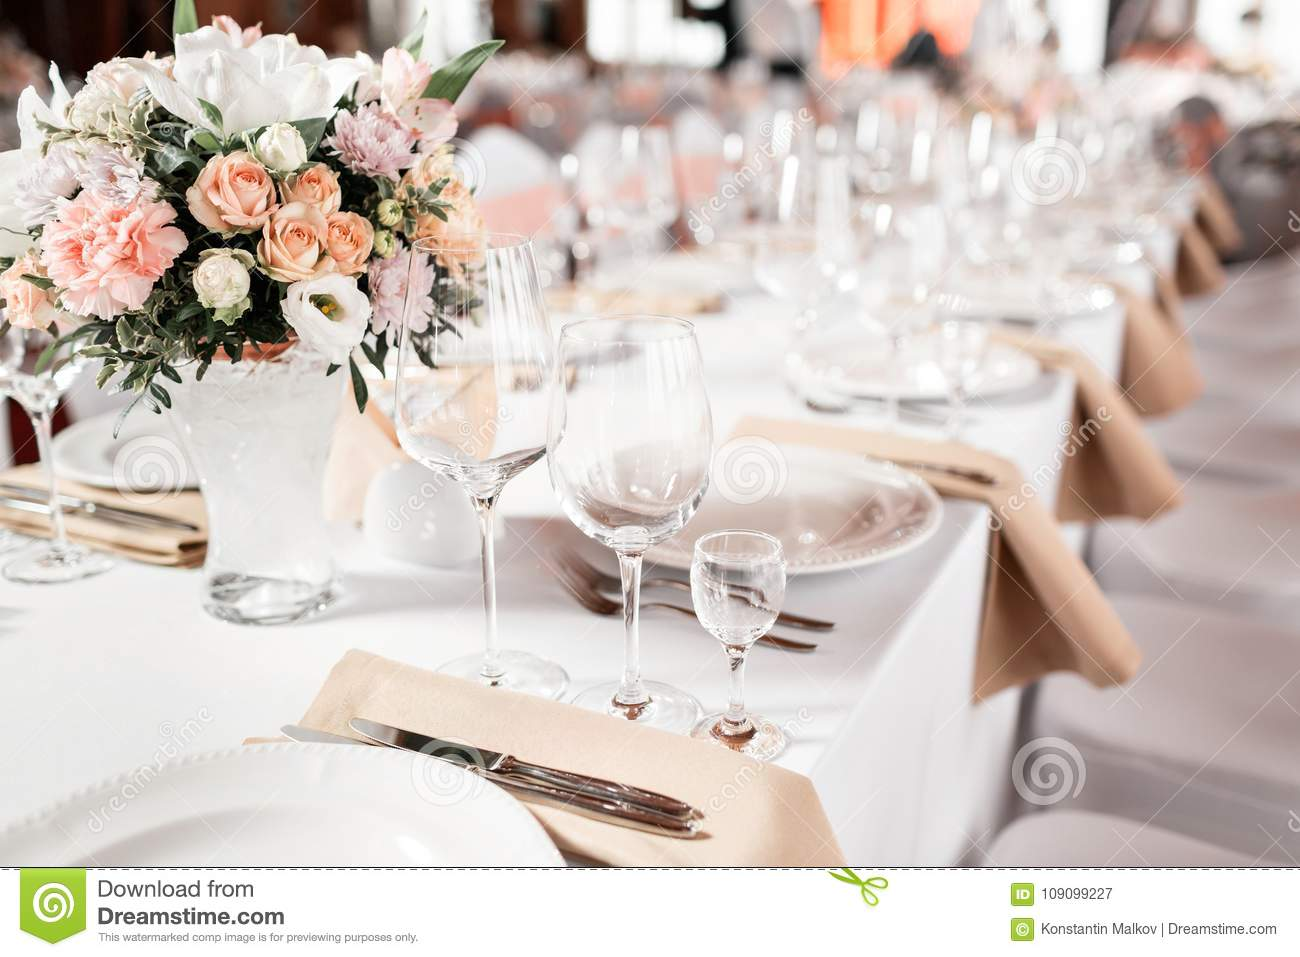 Tables set for an event party or wedding reception. luxury elegant table setting dinner in a restaurant. glasses and